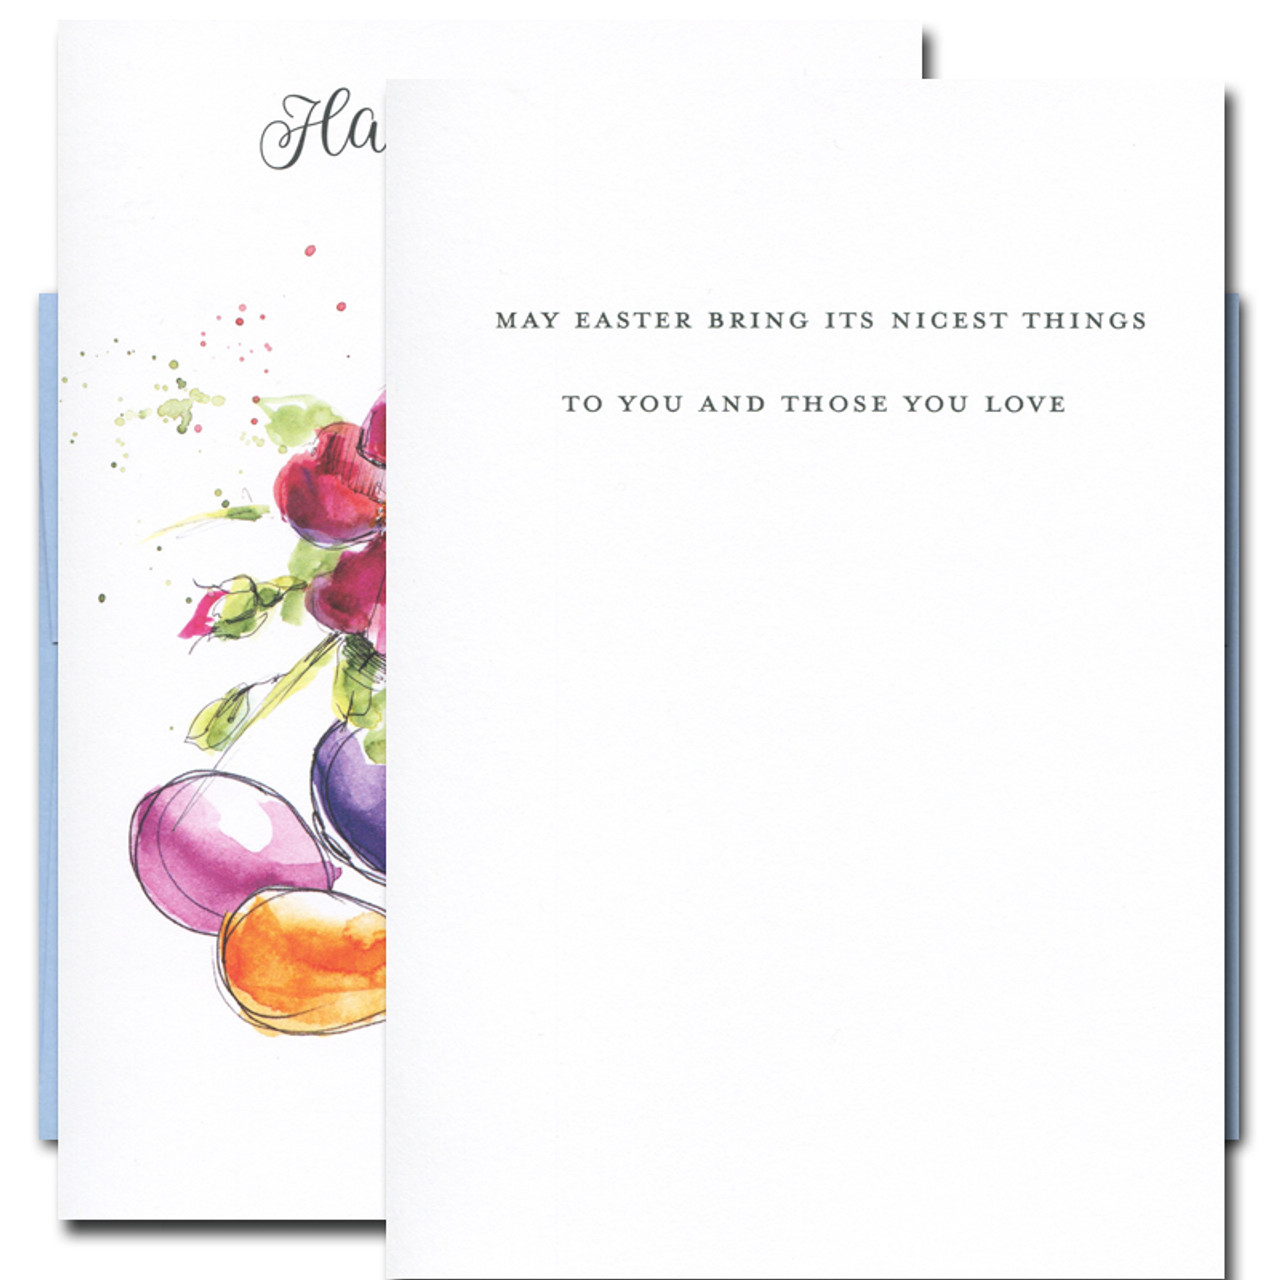 Easter Flowers card inside reads: May  Easter bring its nicest things to you and those you love